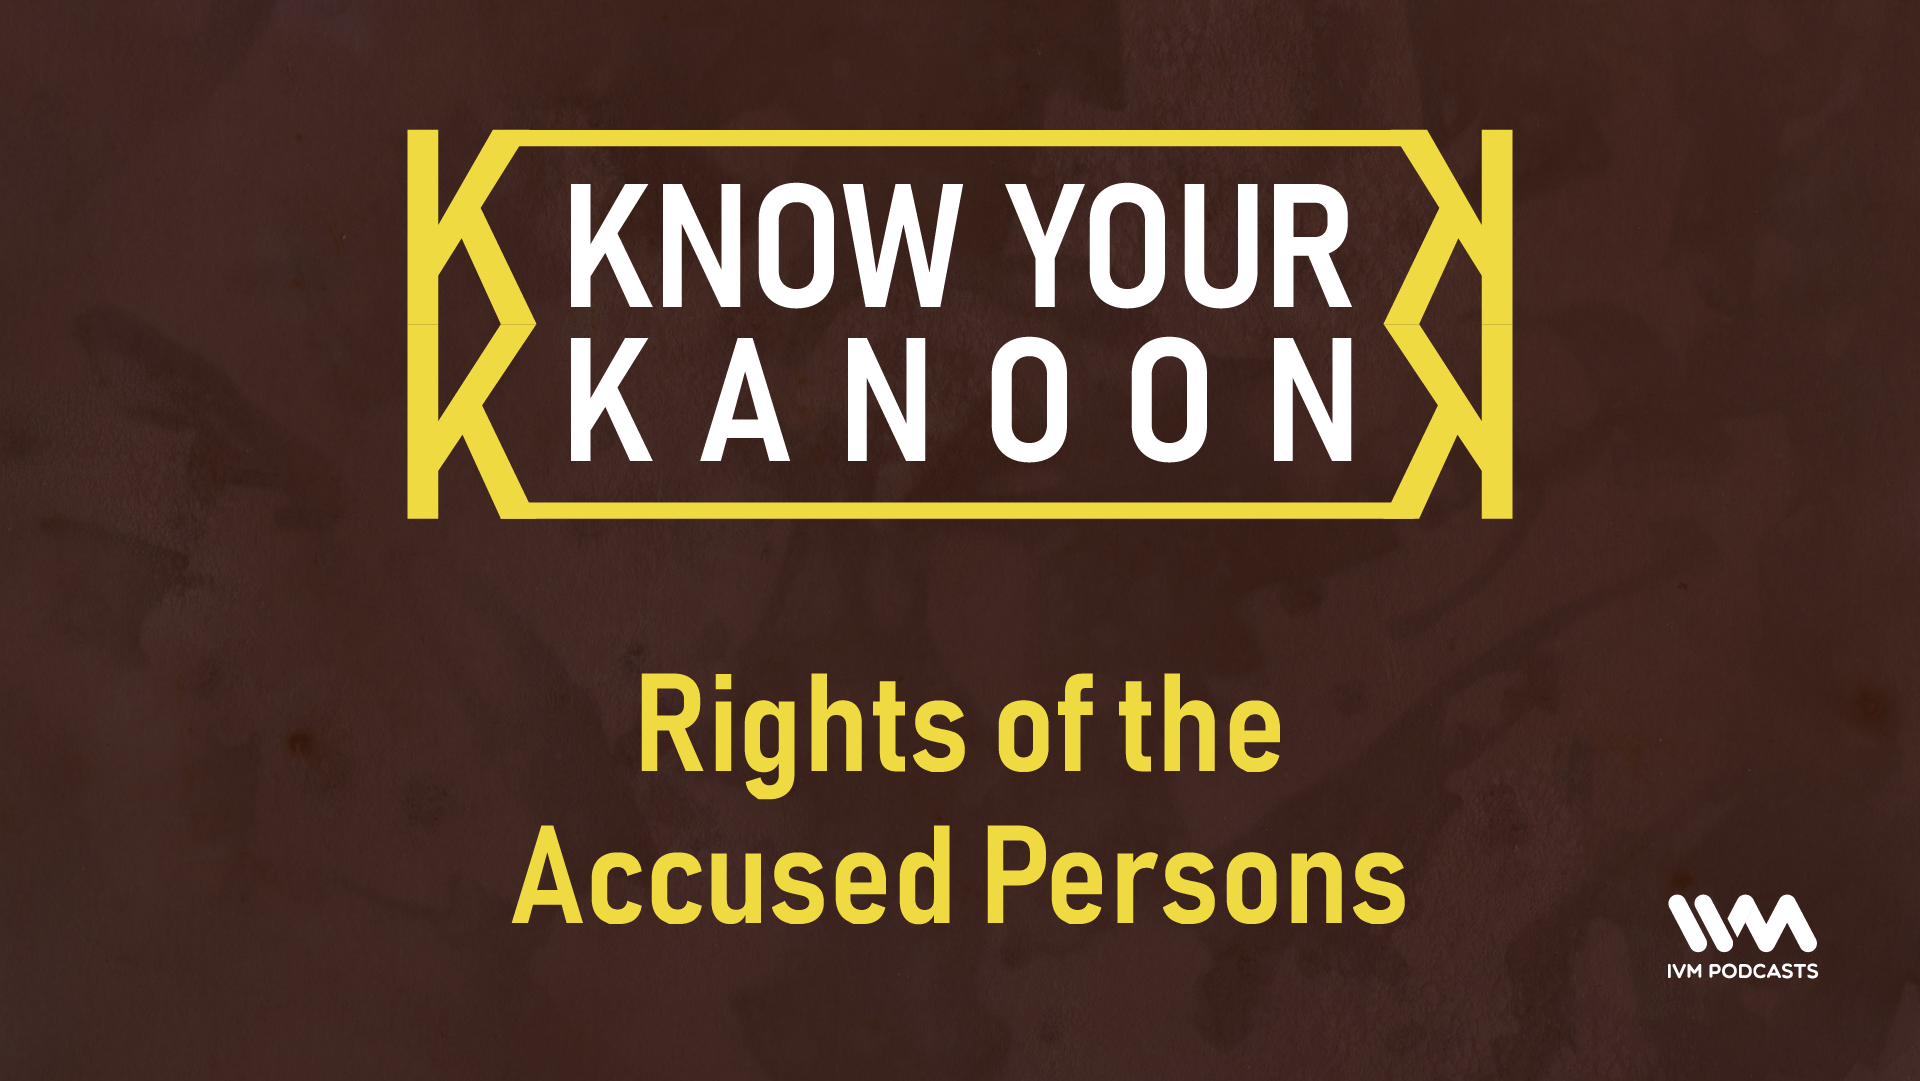 KnowYourKanoonEpisode35.png